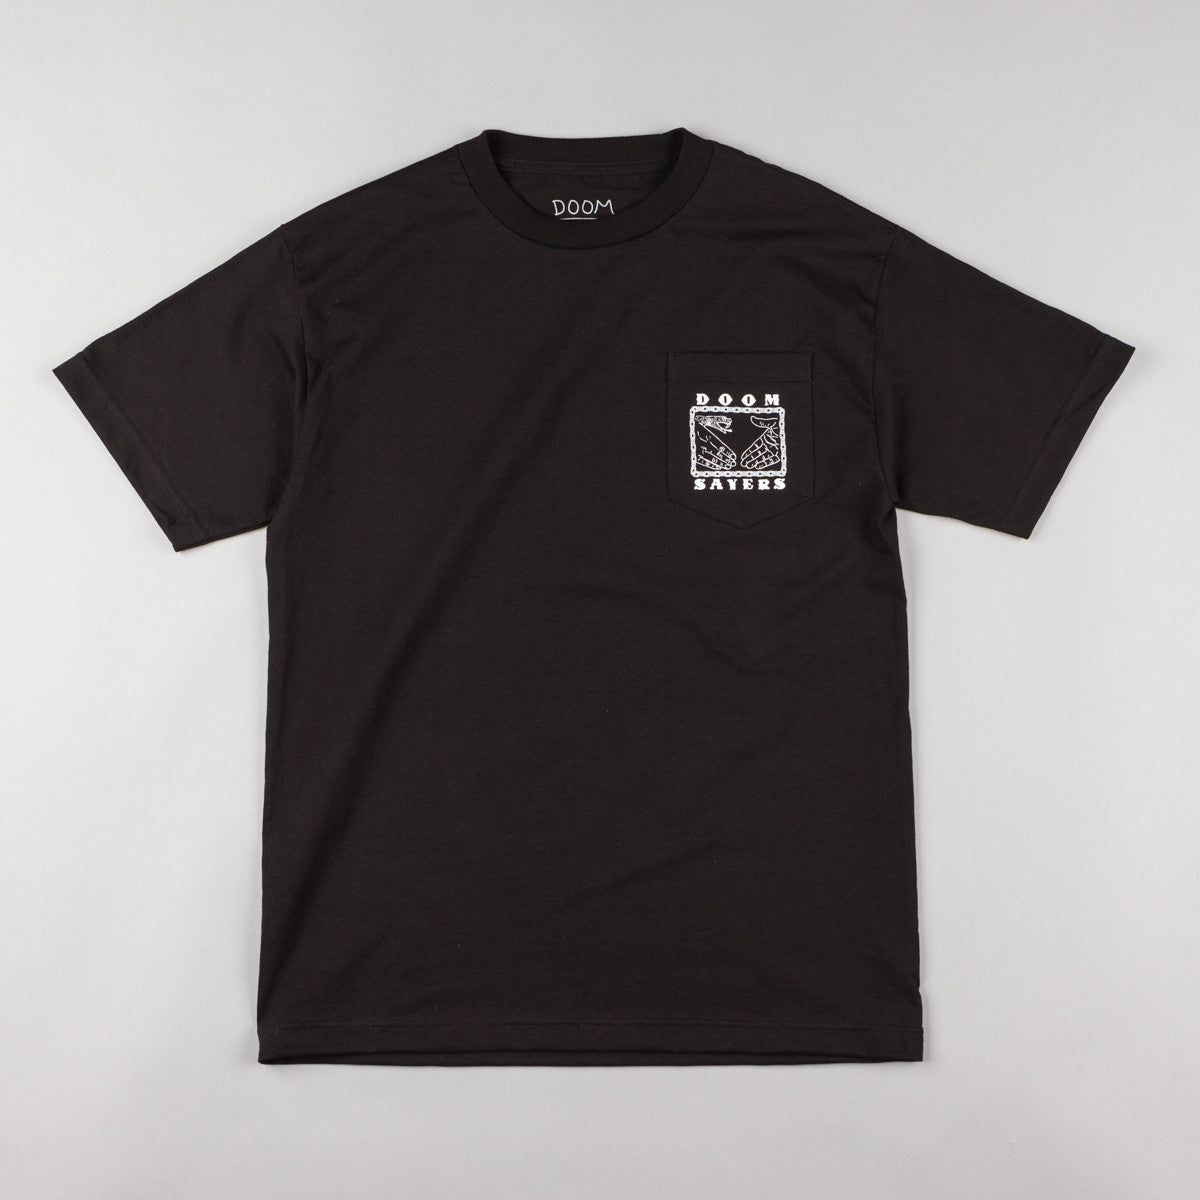 Doom Sayers Chain Pocket T-Shirt - Black